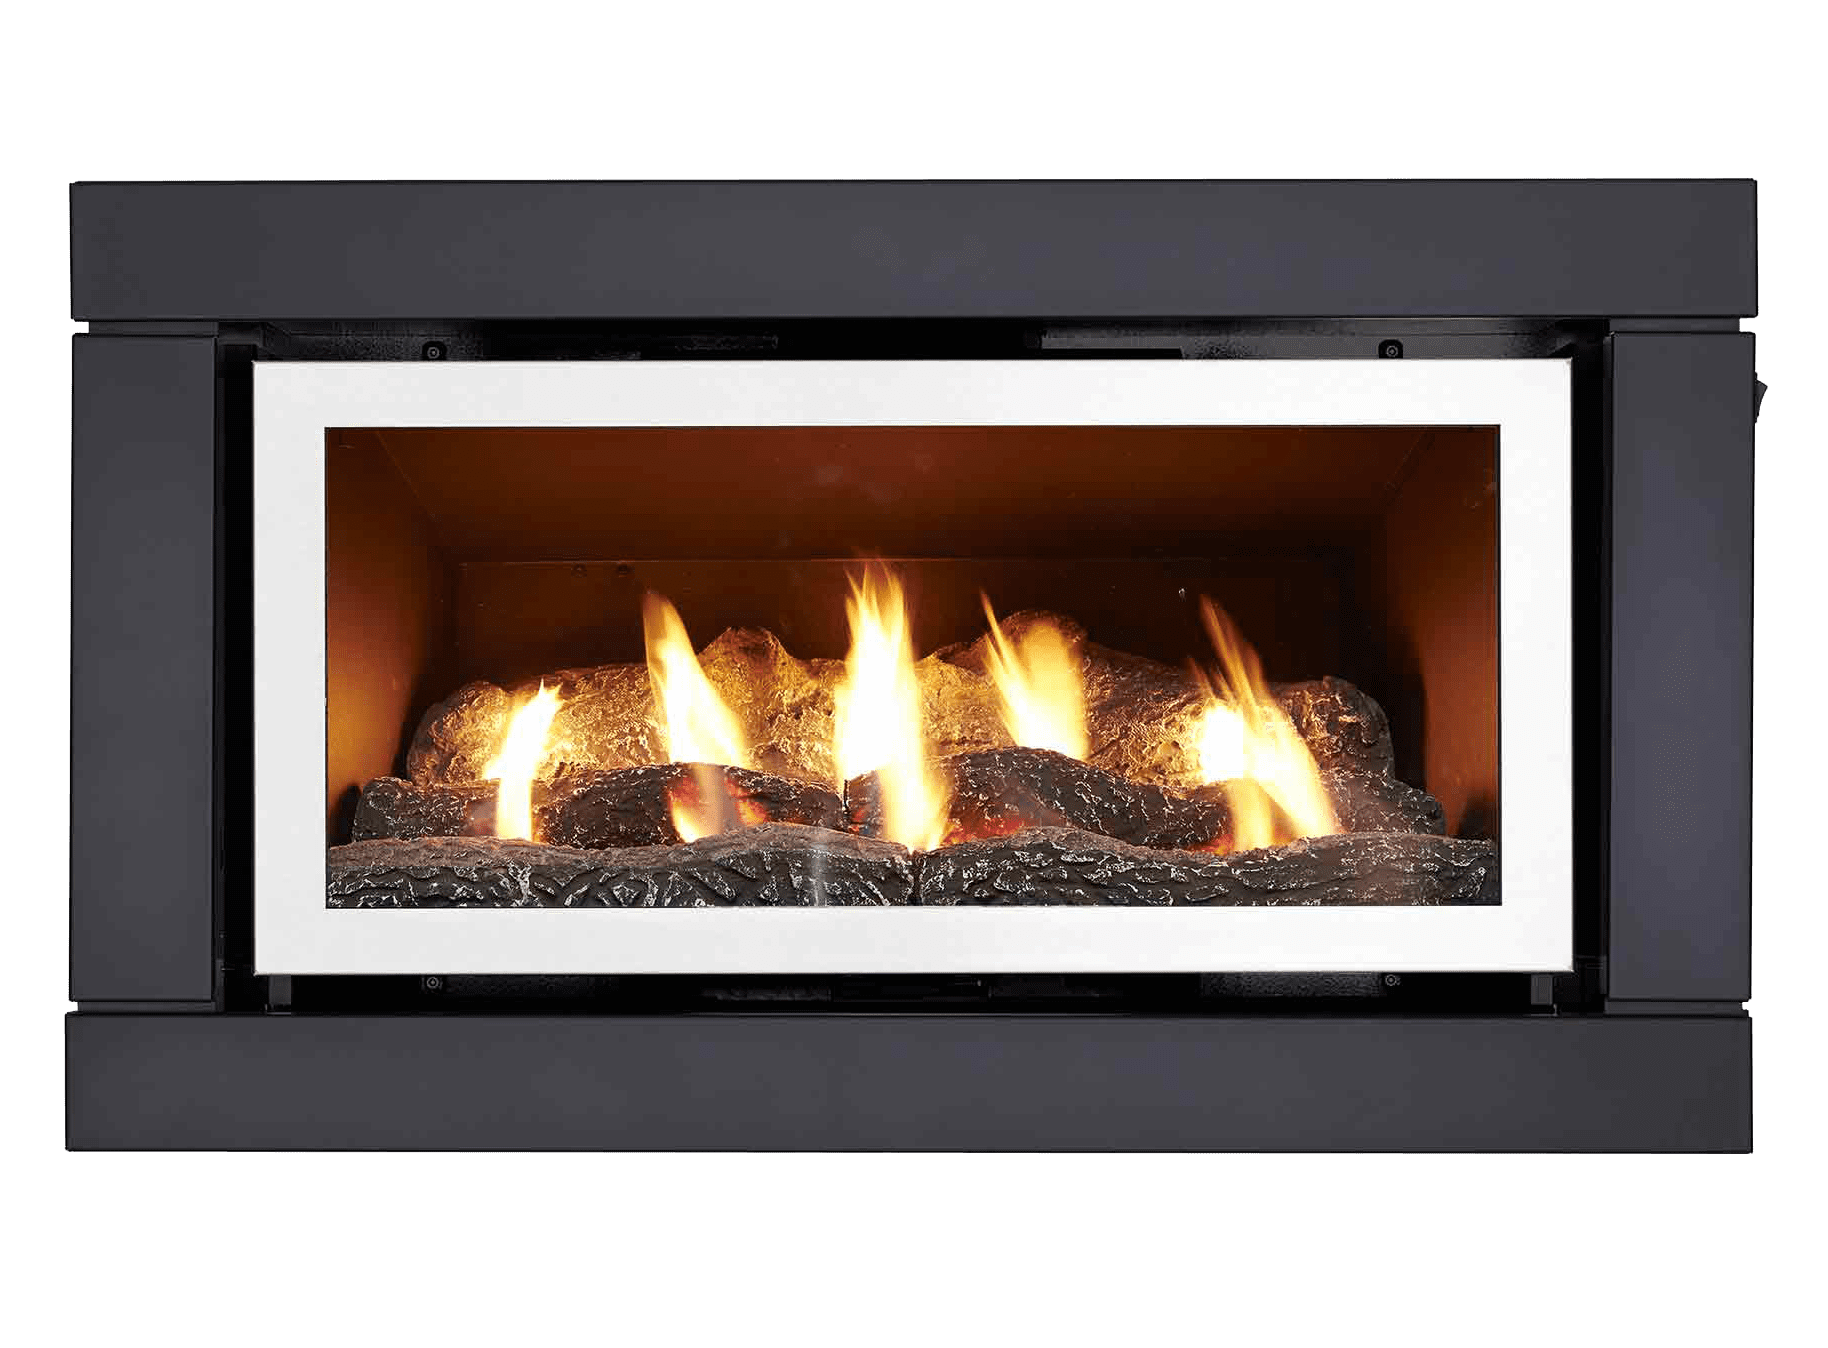 flooring mounted wall cabinet built fireplace gas and pale frame blue large accessories sky walls see tile brown arts with ceramic modern wood style black mantels crafts mantel glass light ventless art white in through